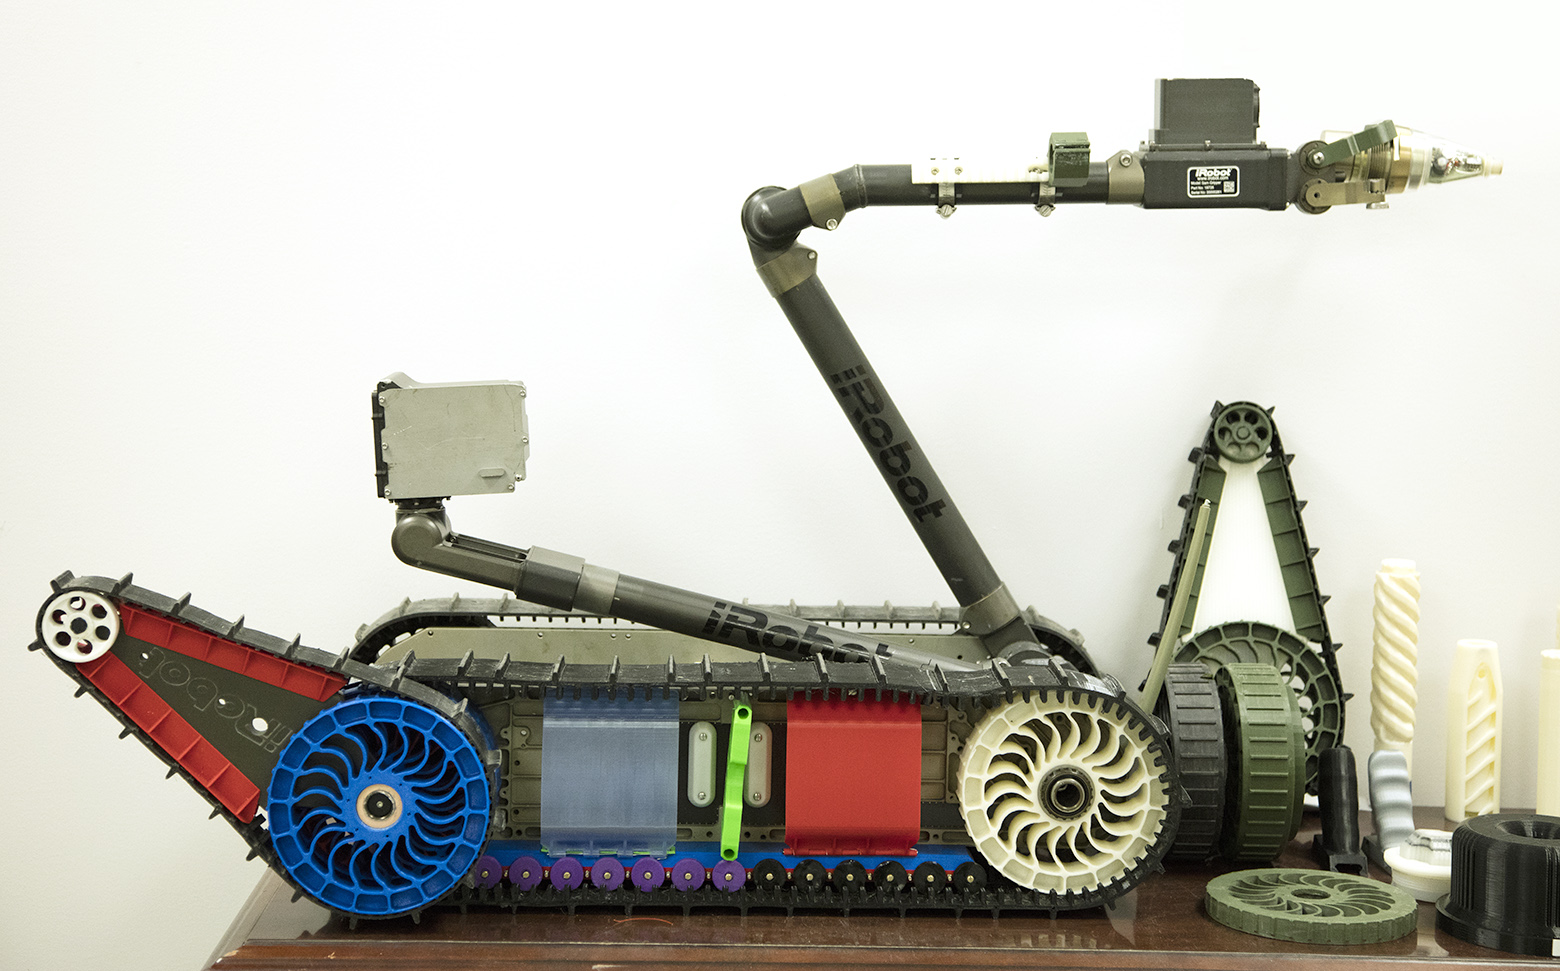 The PackBot with 3D printed parts shown in color. Photo by Erin Usawicz for U.S Army.